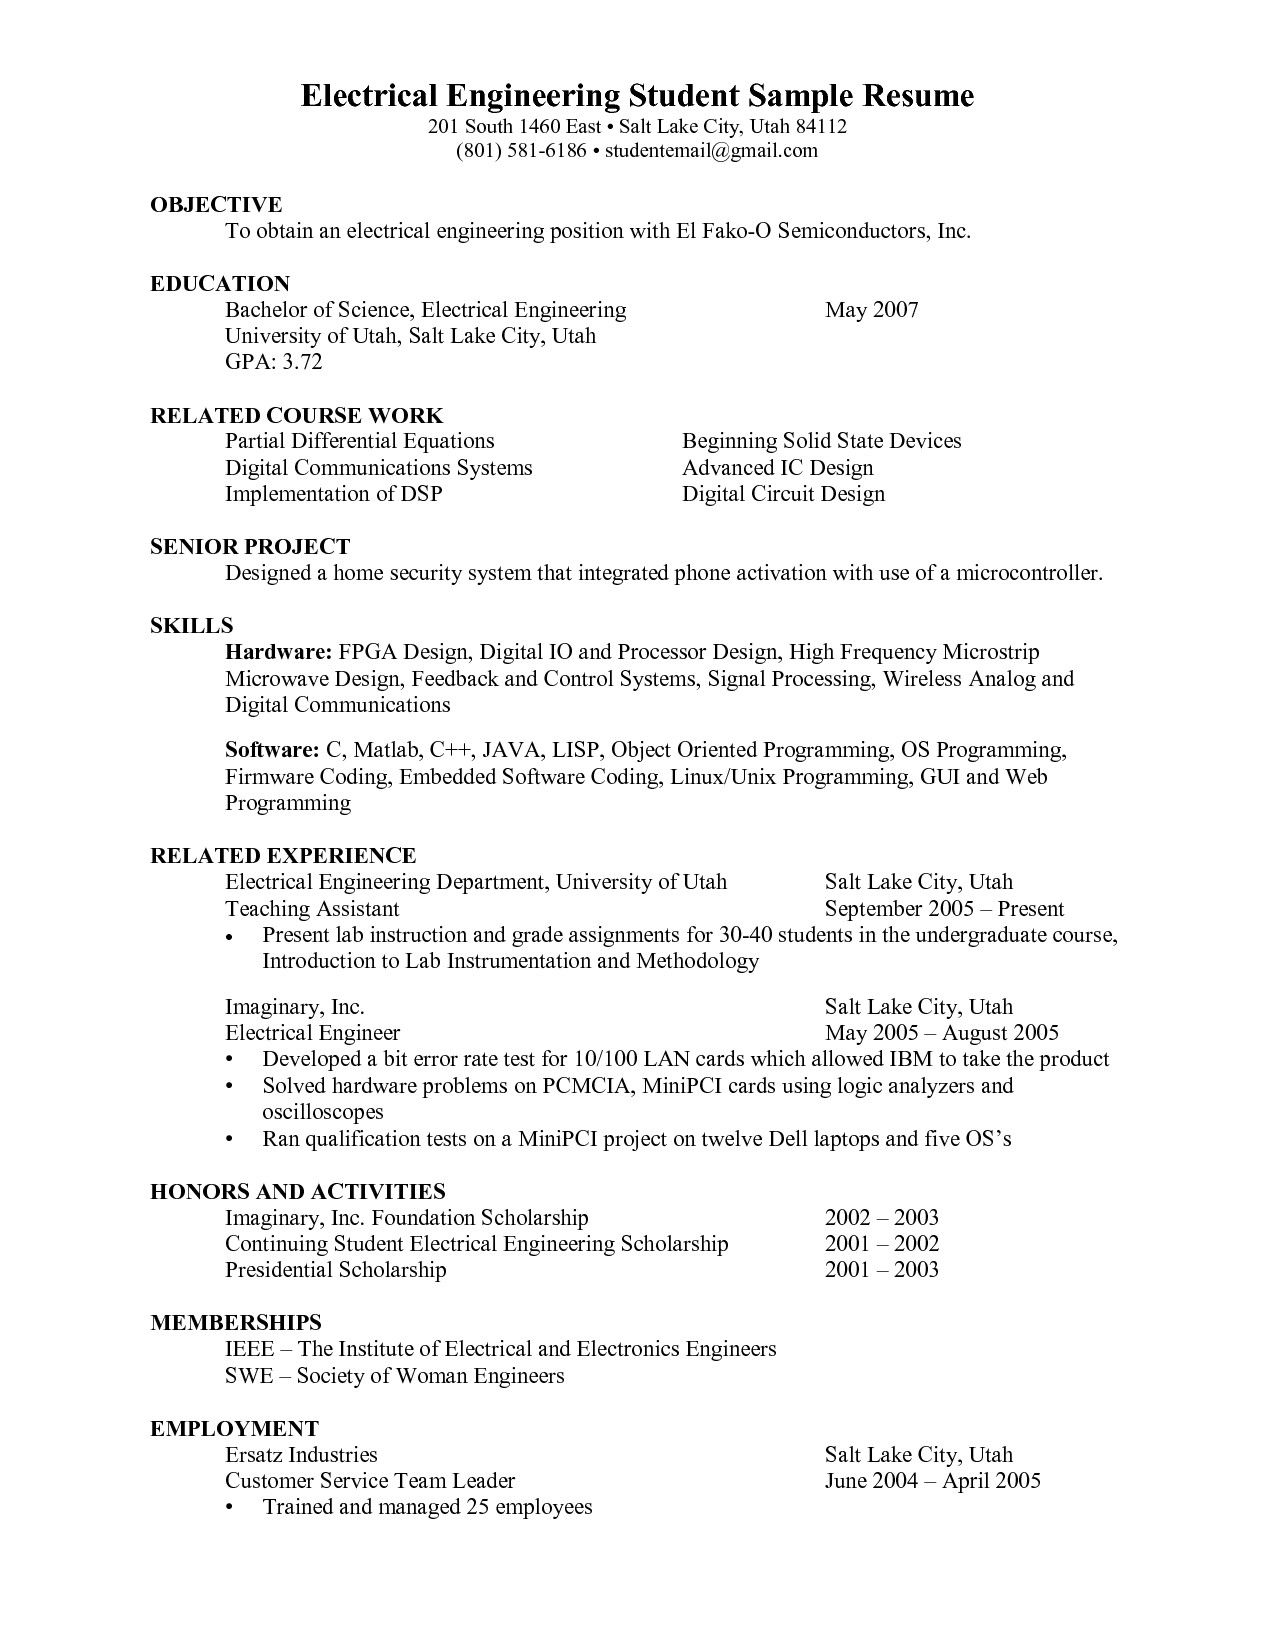 career objective for engineering student resume best examples electronics engineer Resume Career Objective For Electronics Engineer Resume